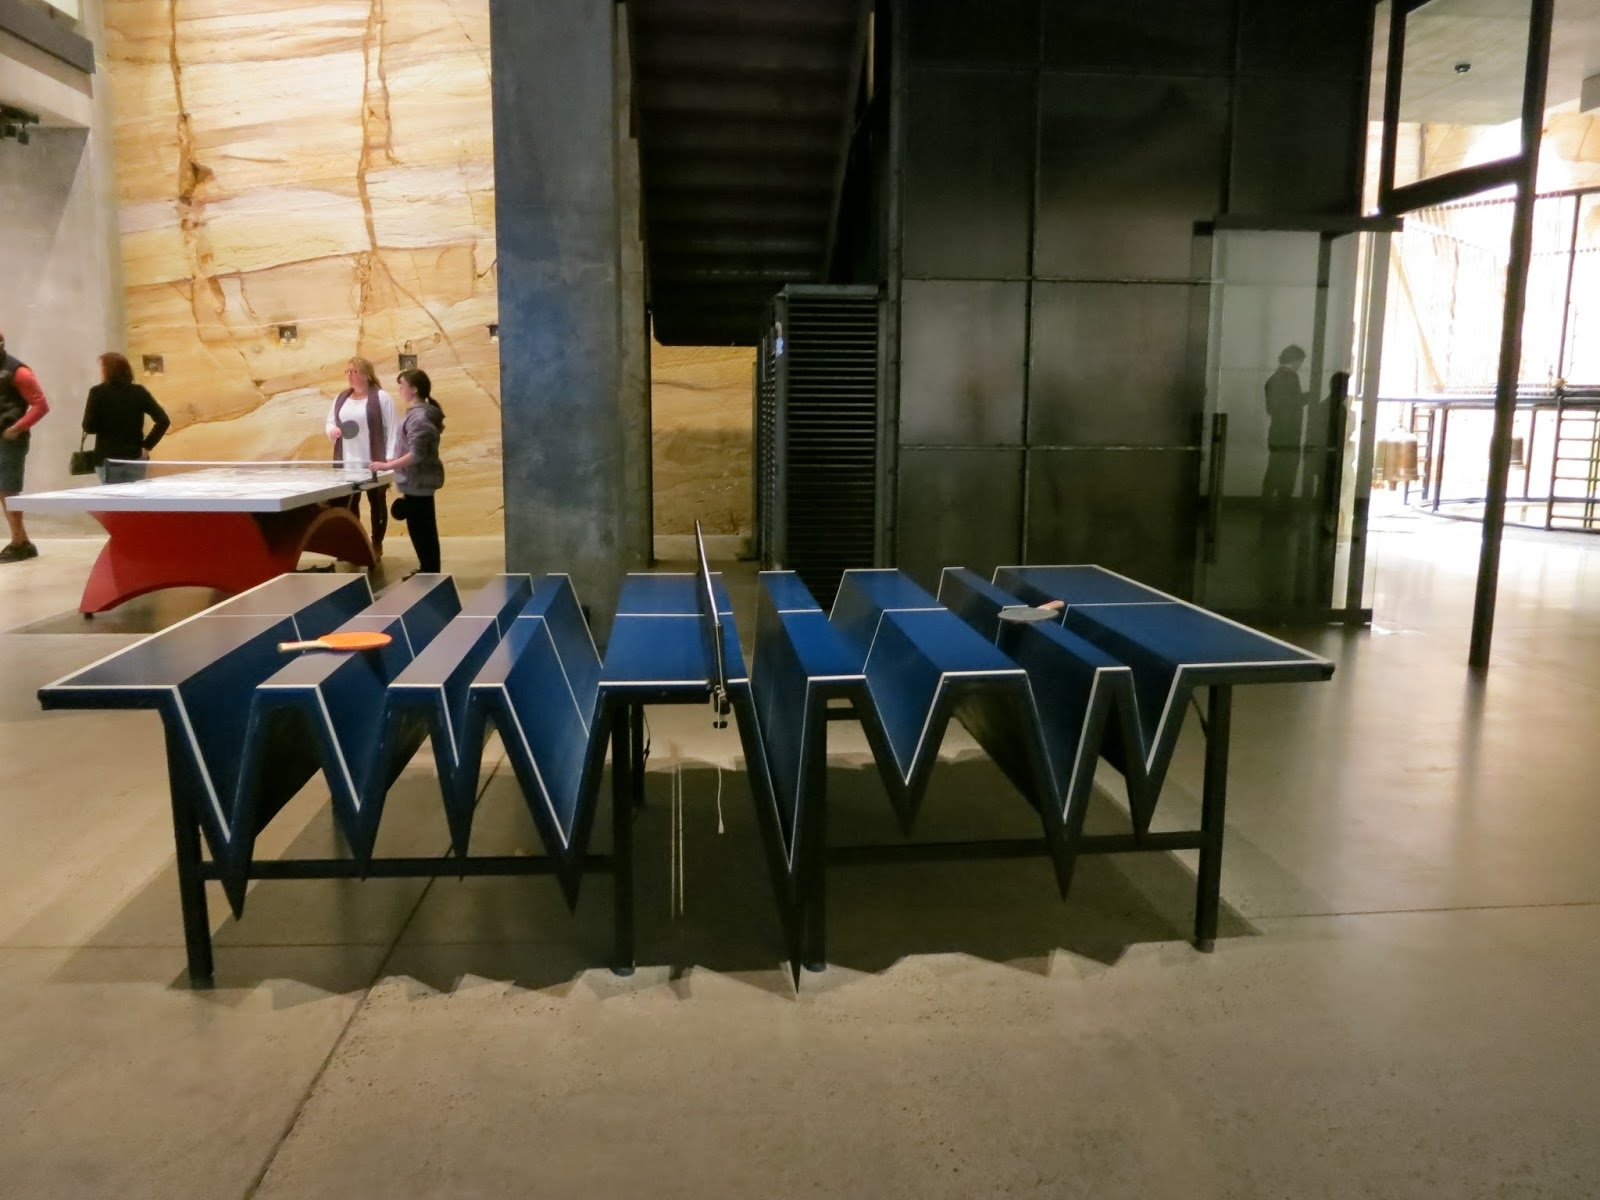 Special Design Table Tennis Table